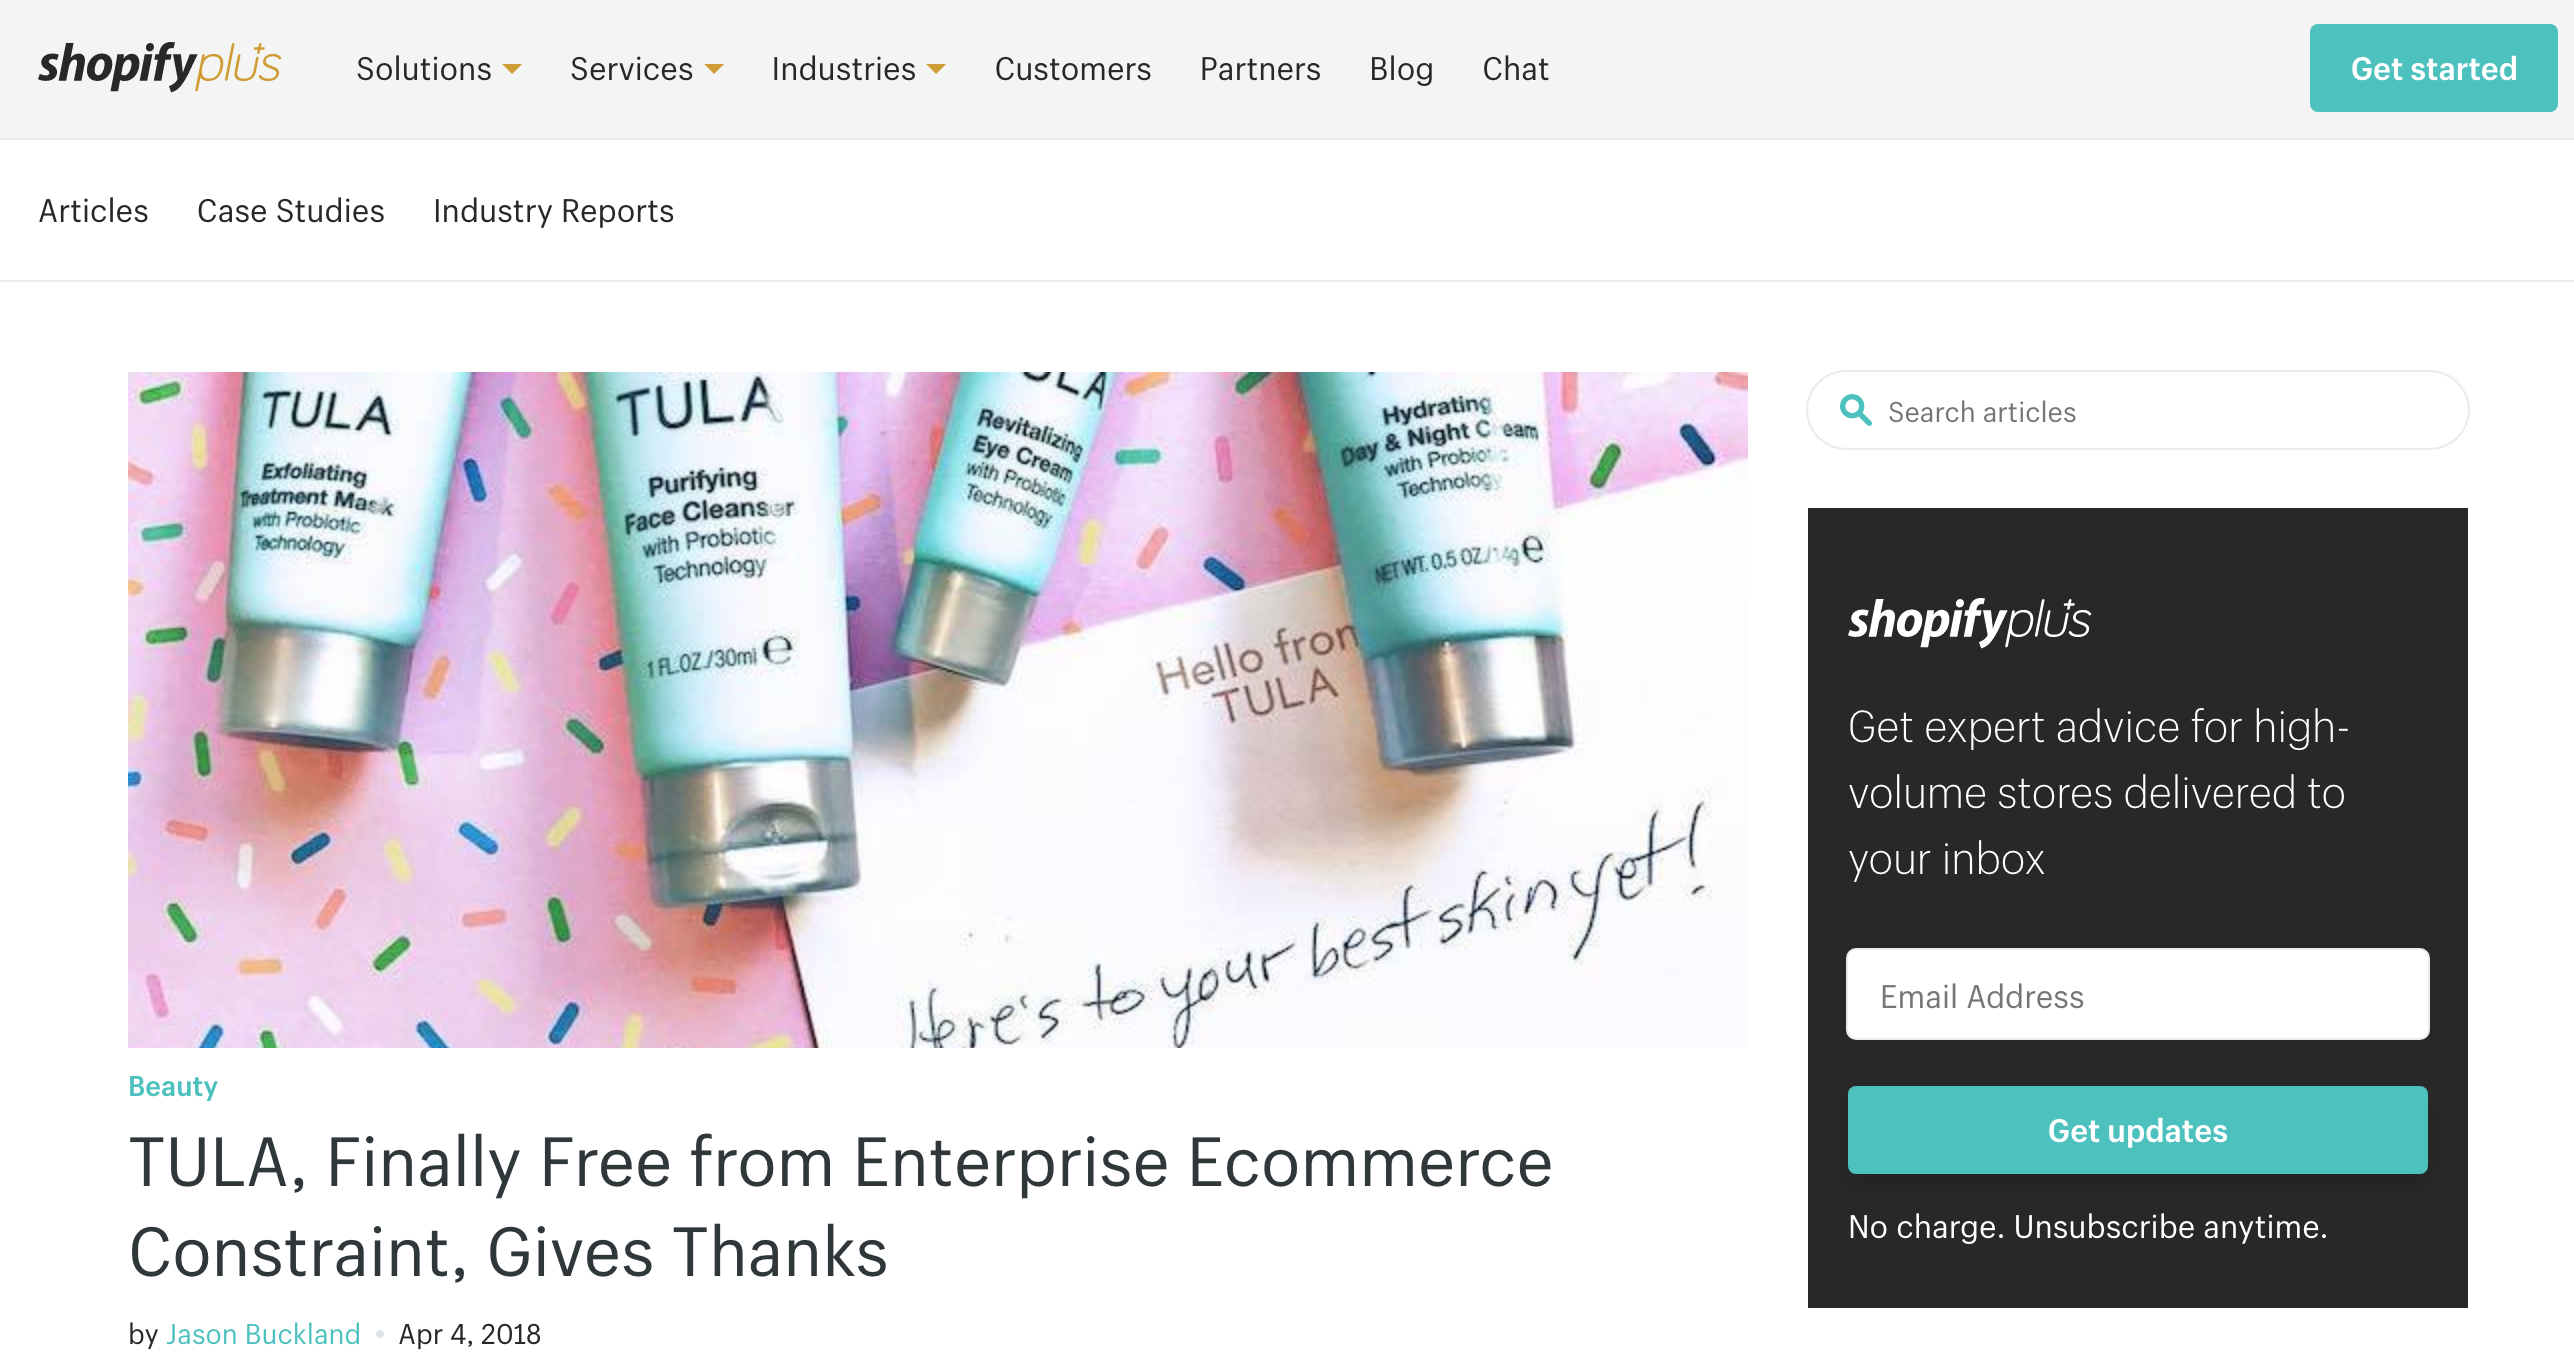 Shopify_plus_blog